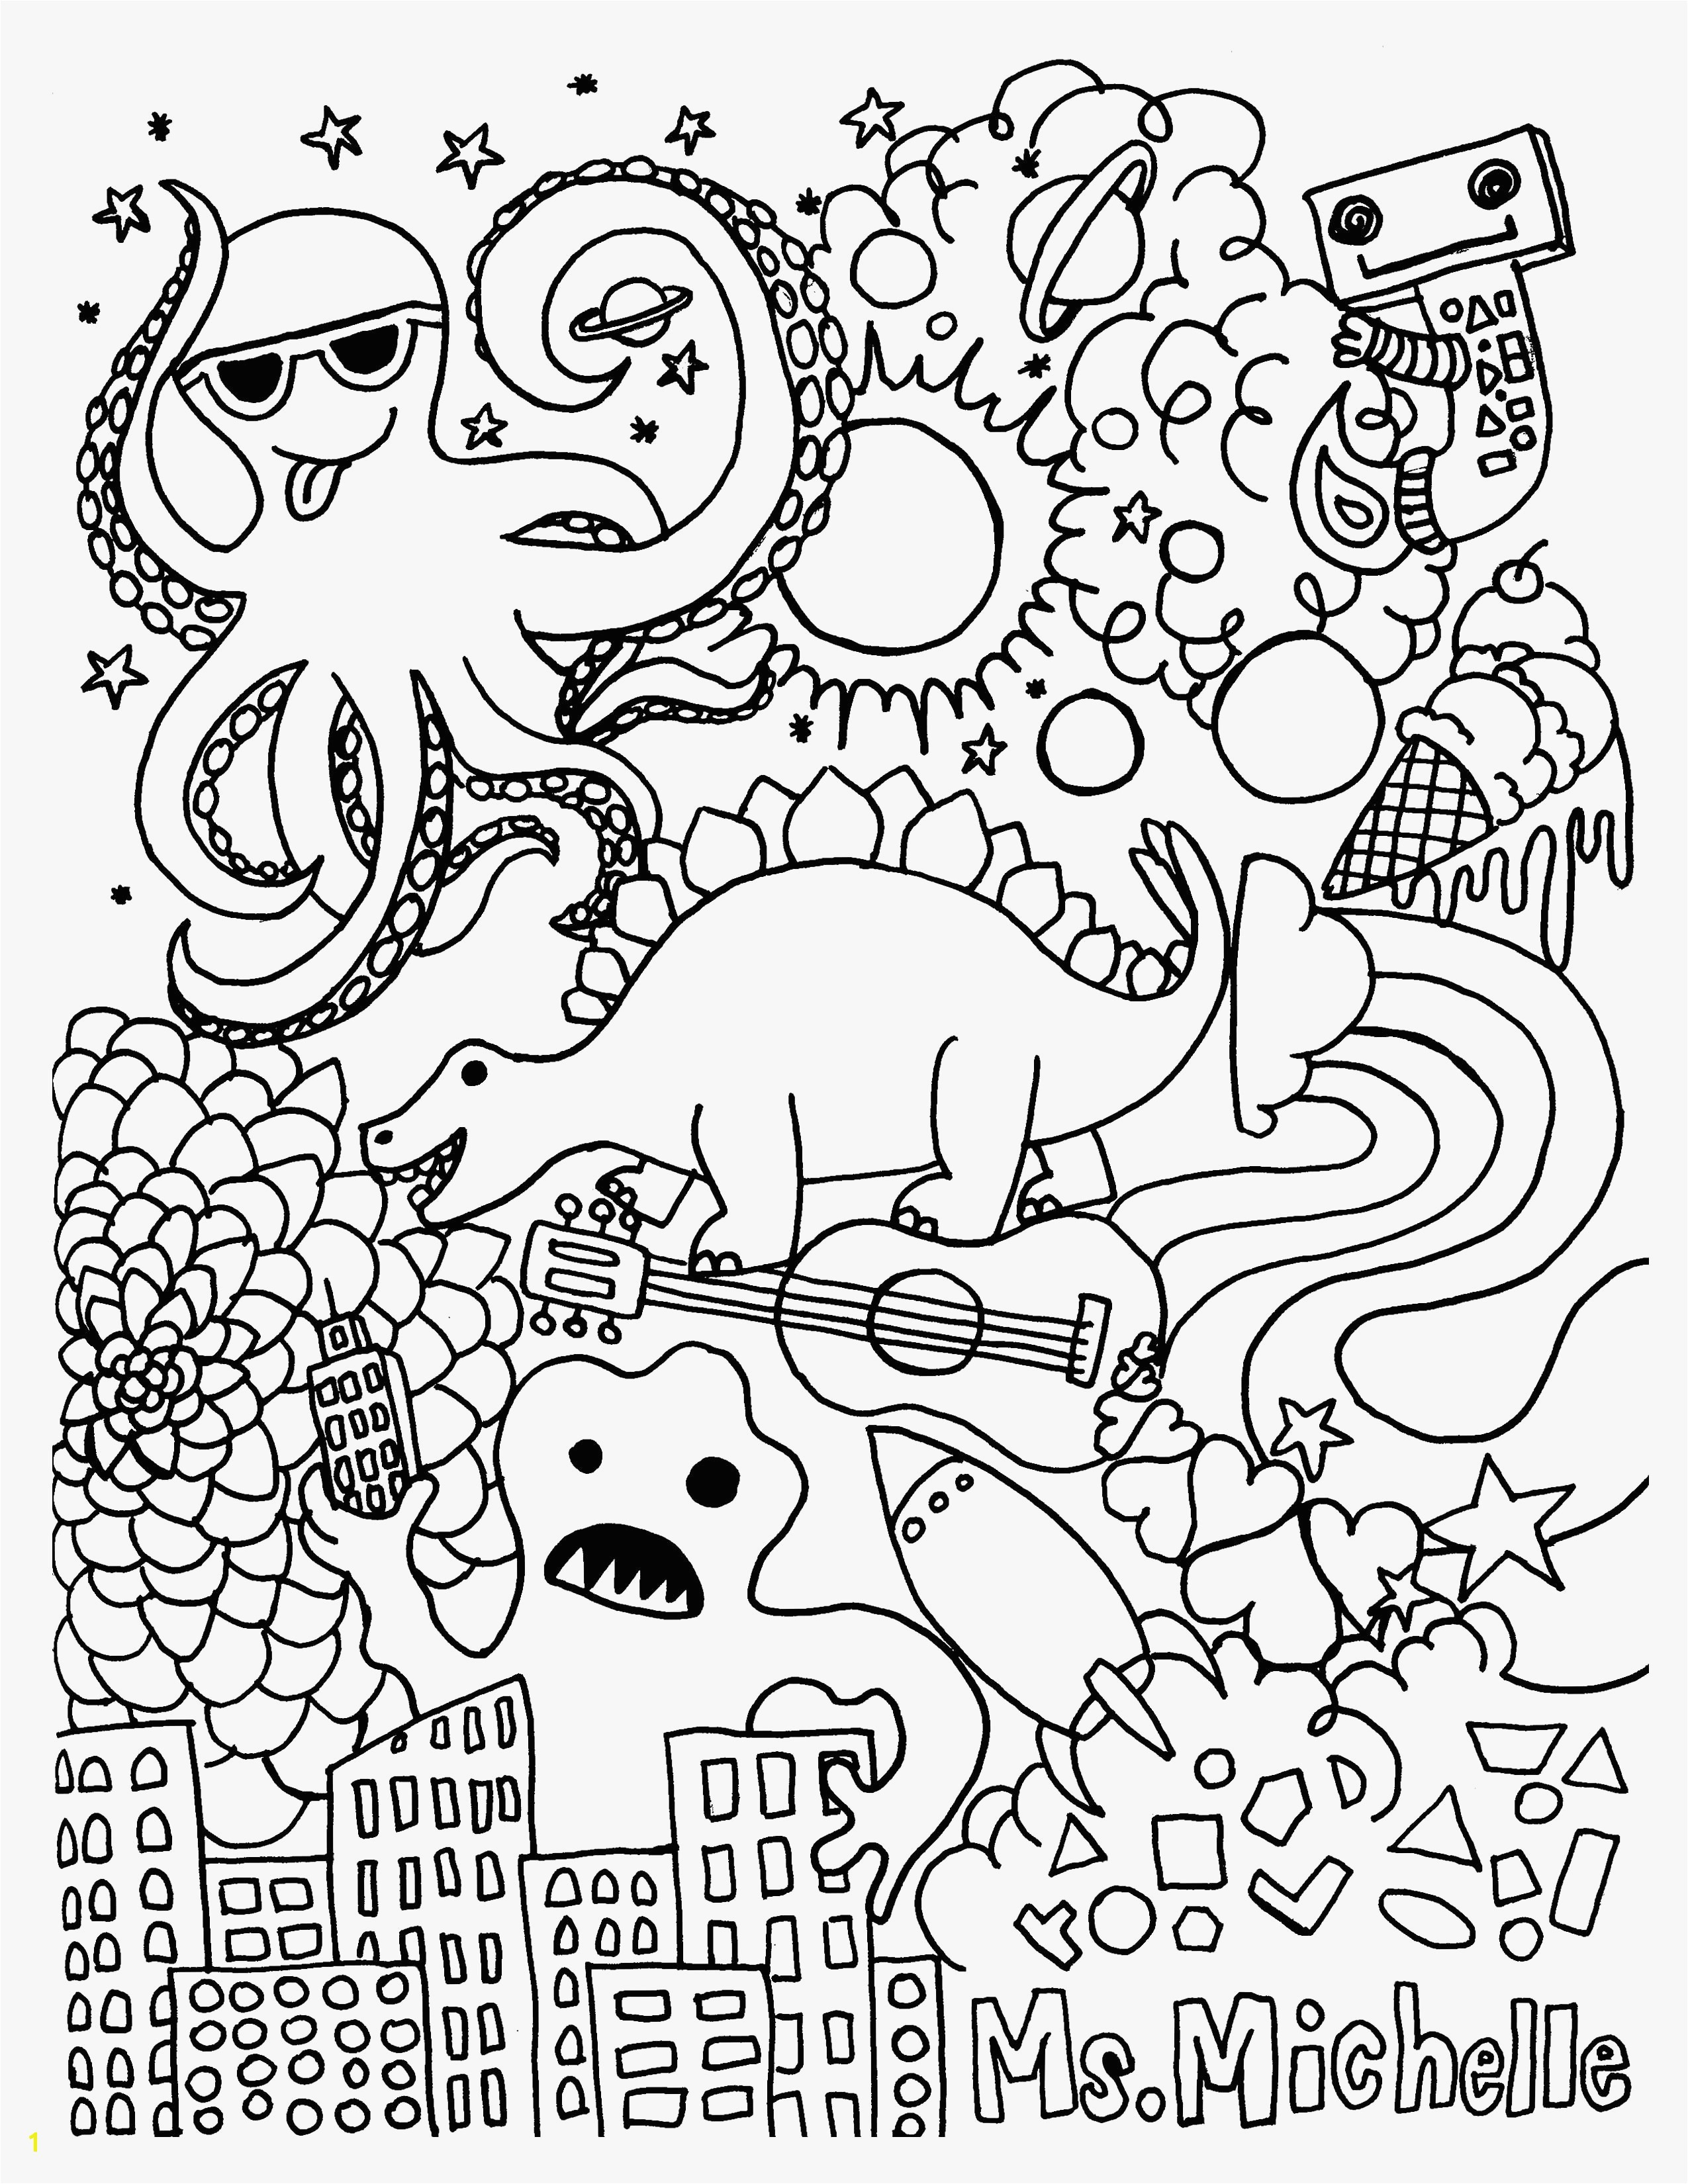 color sheets for kids inspirational cool coloring page unique witch coloring pages new crayola pages 0d new crayola coloring pages autumn leaves